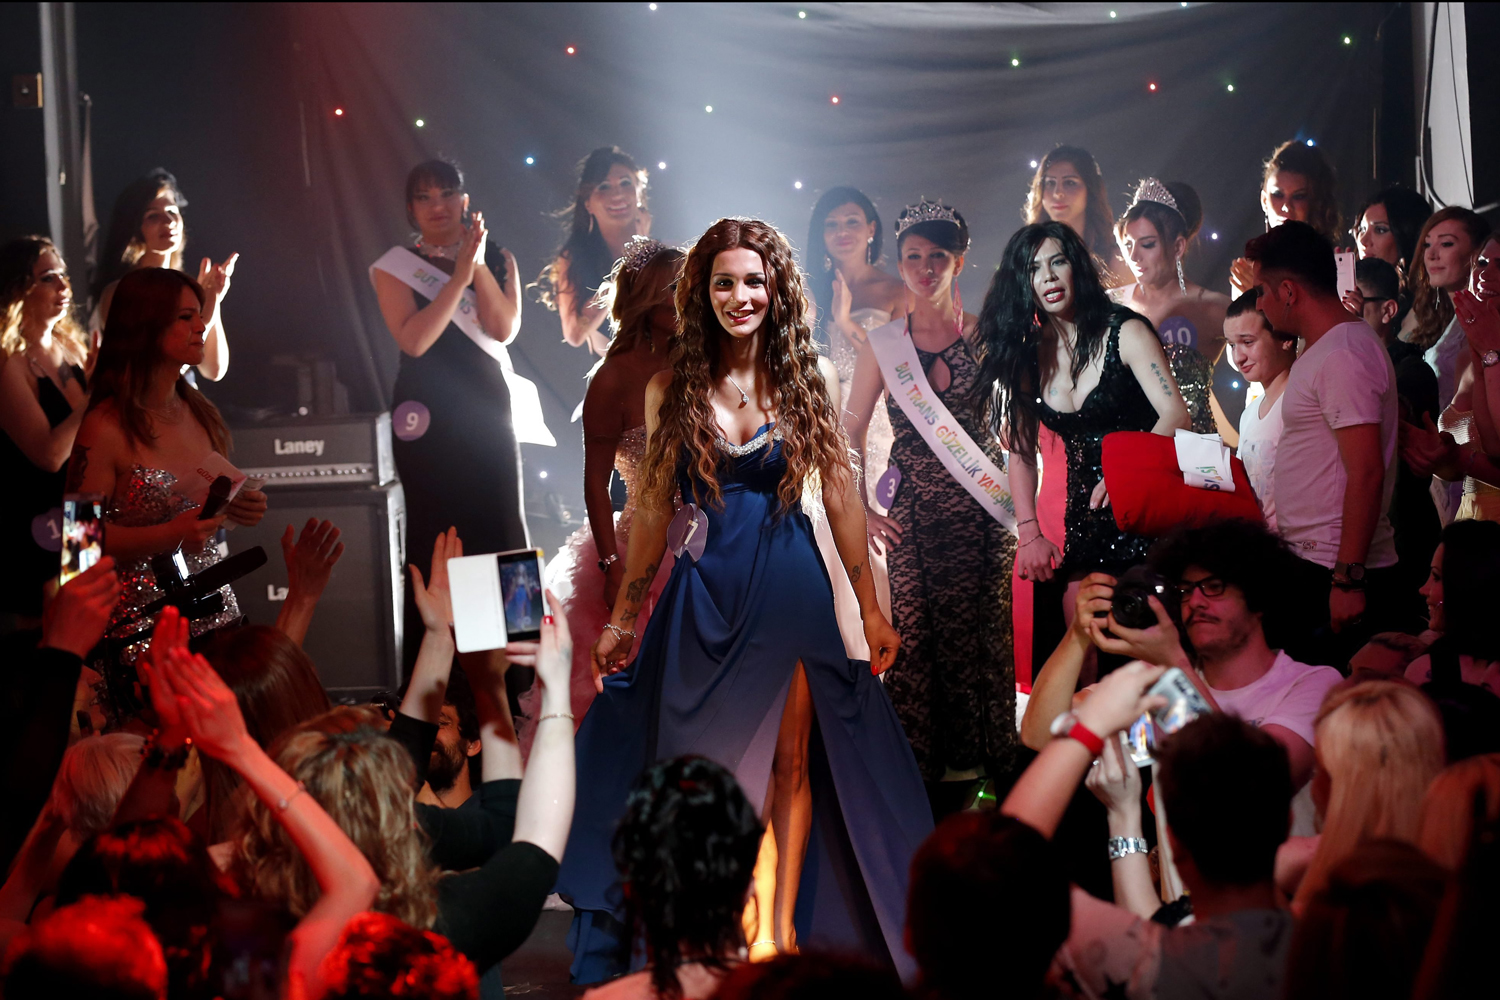 Jun. 21, 2014. The winner of transsexual beauty contest, Yanki Bayramoglu (C) cheers during a transsexual beauty contest in Istanbul, Turkey.